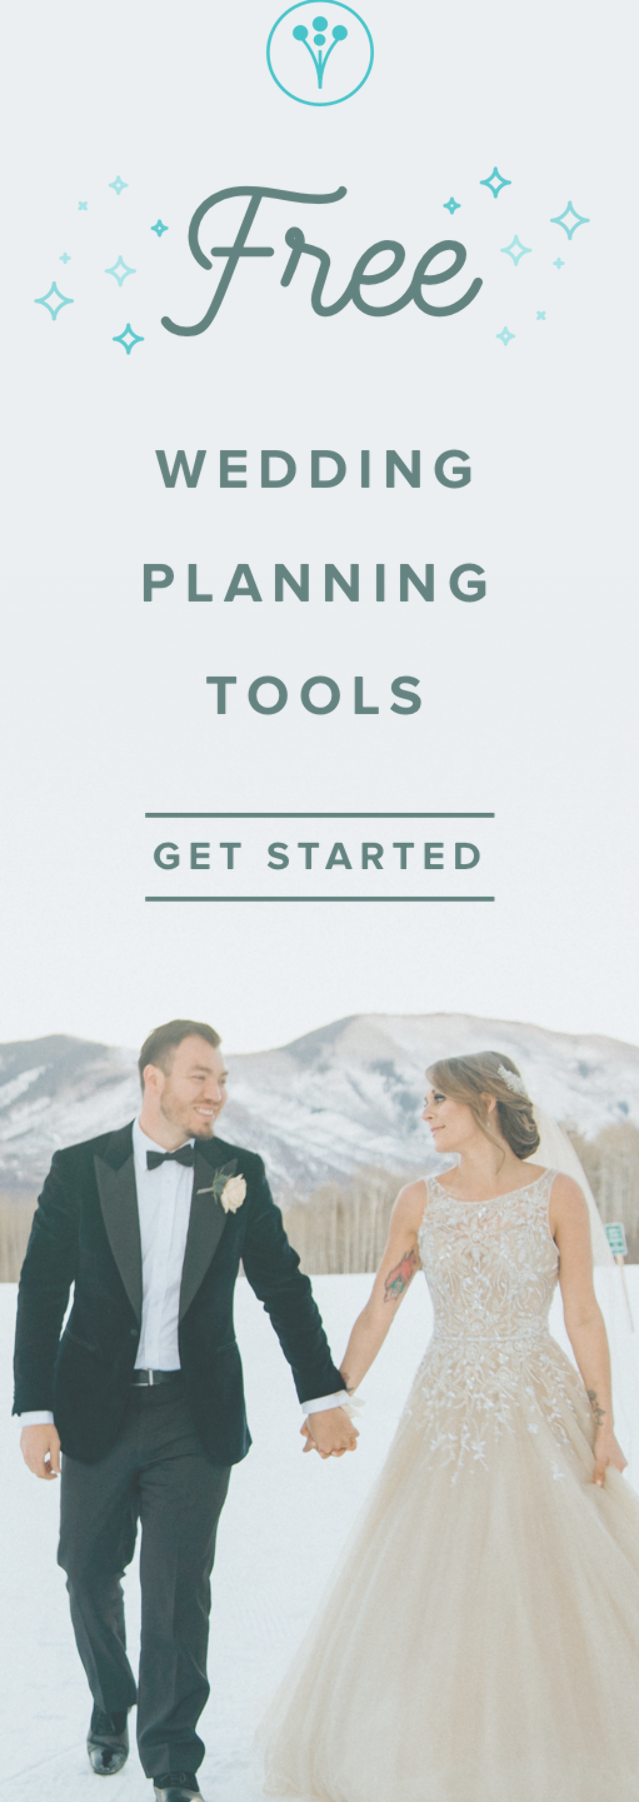 Checklist Budget Tracker A Free Wedding Website And More Sign Up To Get Started Planung Einer Hochzeit Hochzeit Budget Checkliste Gunstige Hochzeit